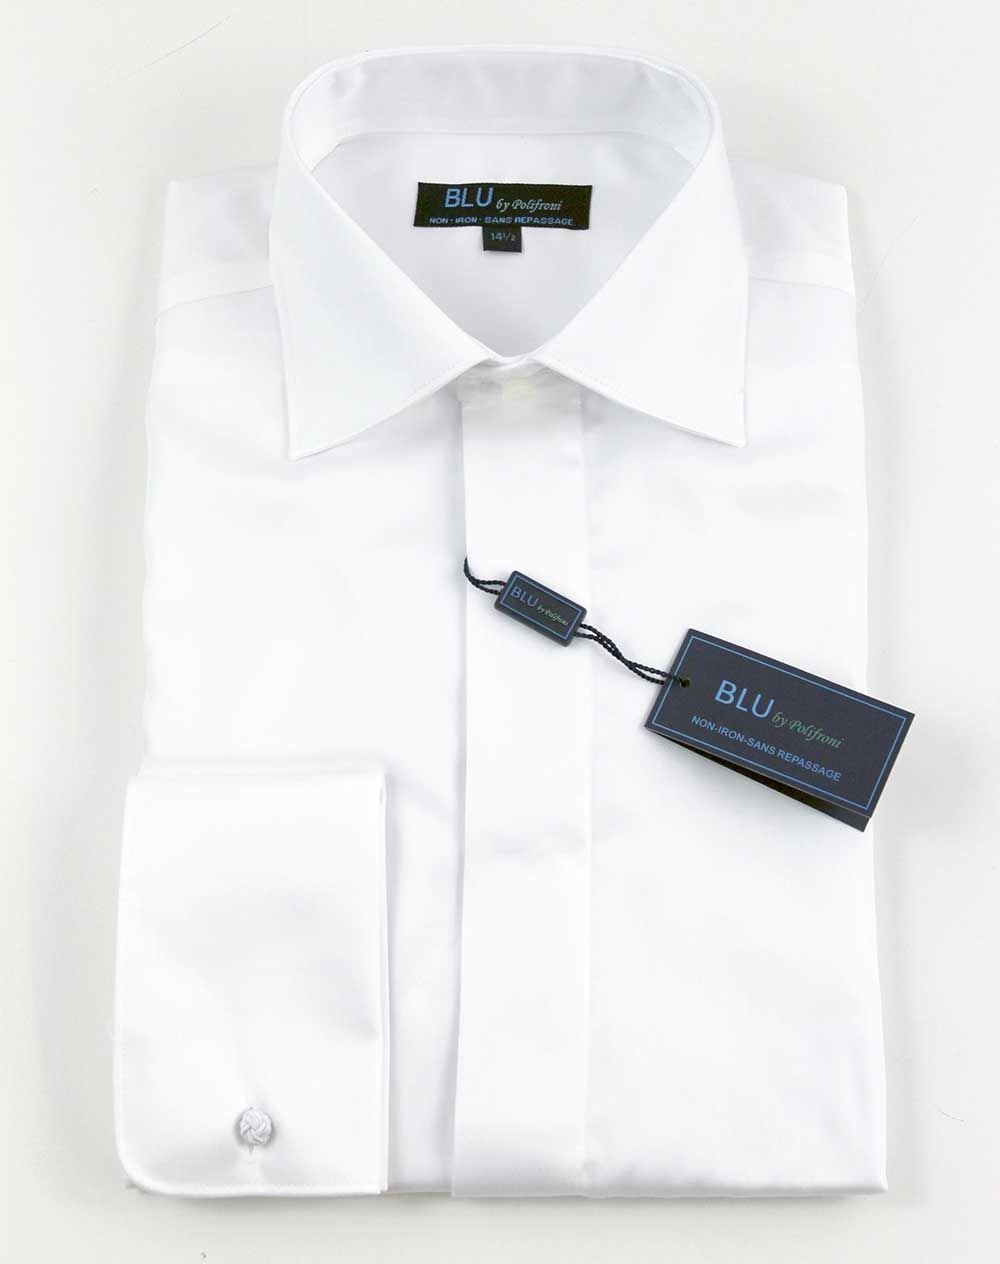 Polifroni Dress Shirt - Blu420 Tuxedo - White French Cuff